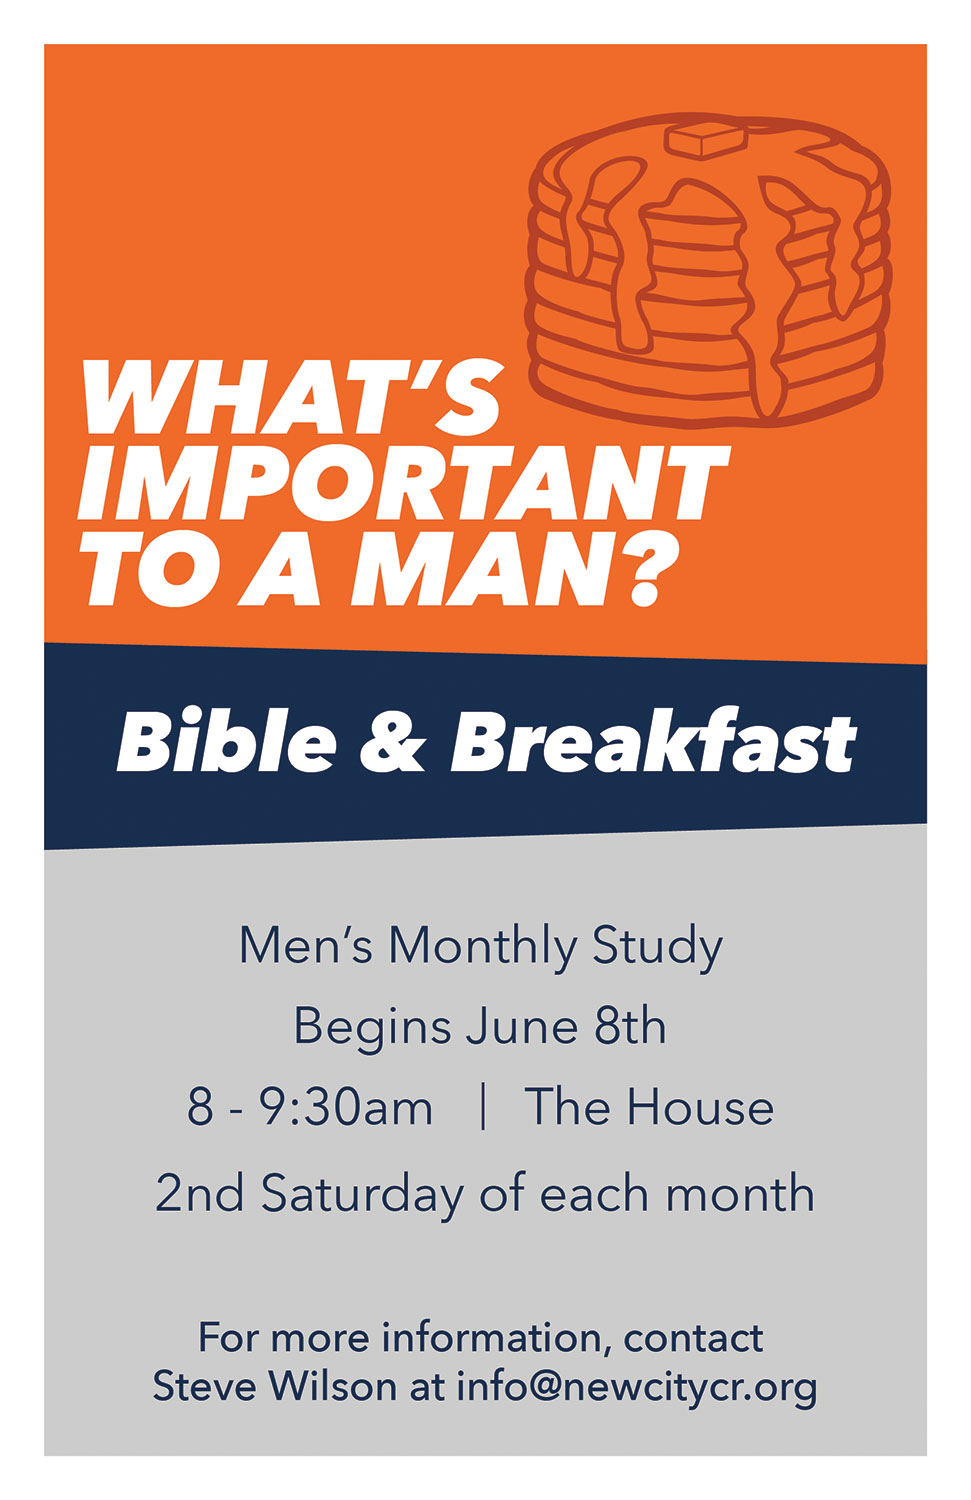 Men's bible and breakfast